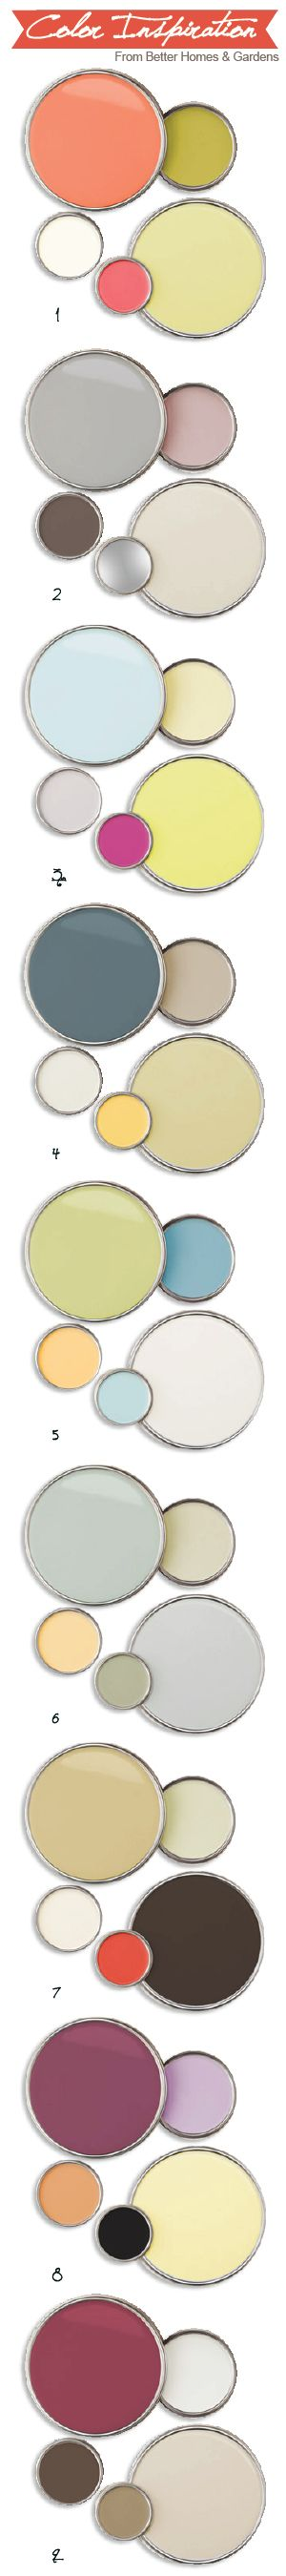 Better homes and gardens color palette inspirations. designer colors, color ideas for the home